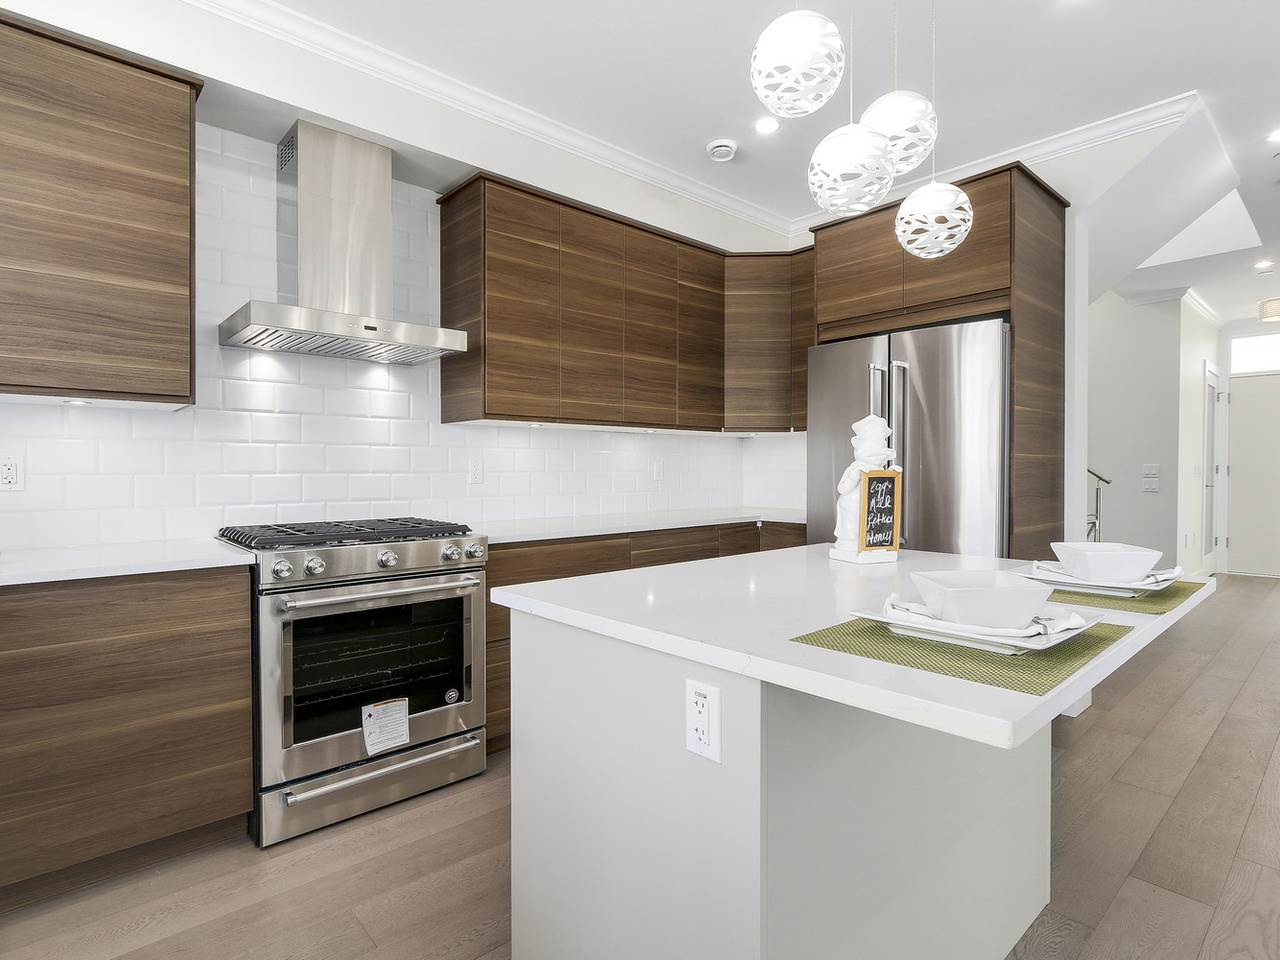 Photo 10: 3539 ETON Street in Vancouver: Hastings East House for sale (Vancouver East)  : MLS® # R2159493